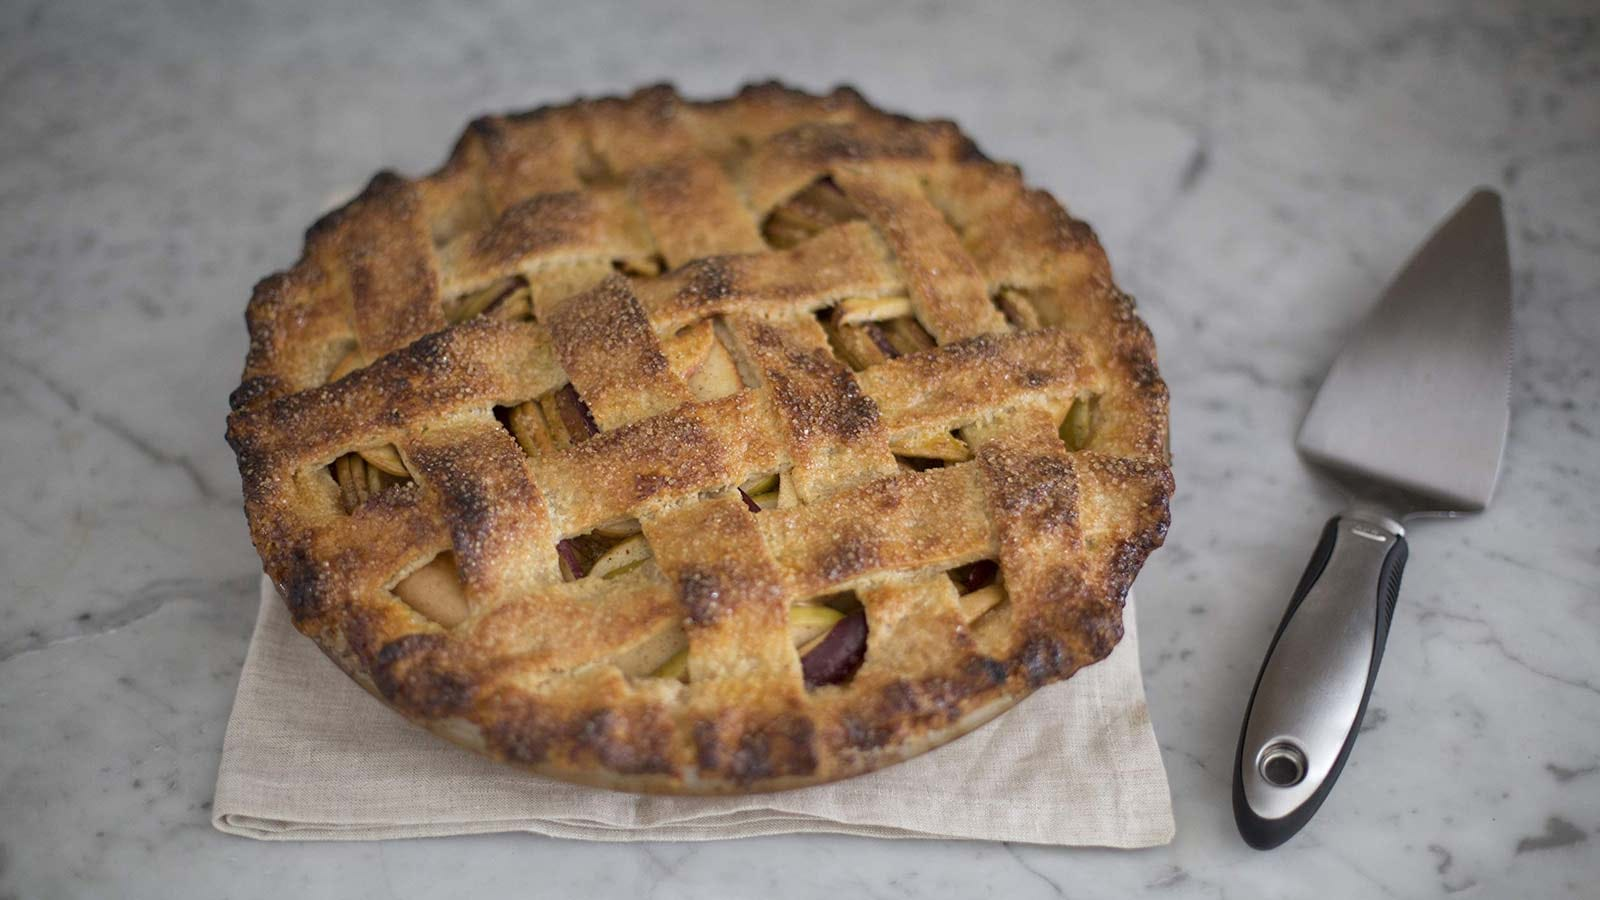 An apple pie on a counter with the OXO Steel Pie Server sitting next to it.